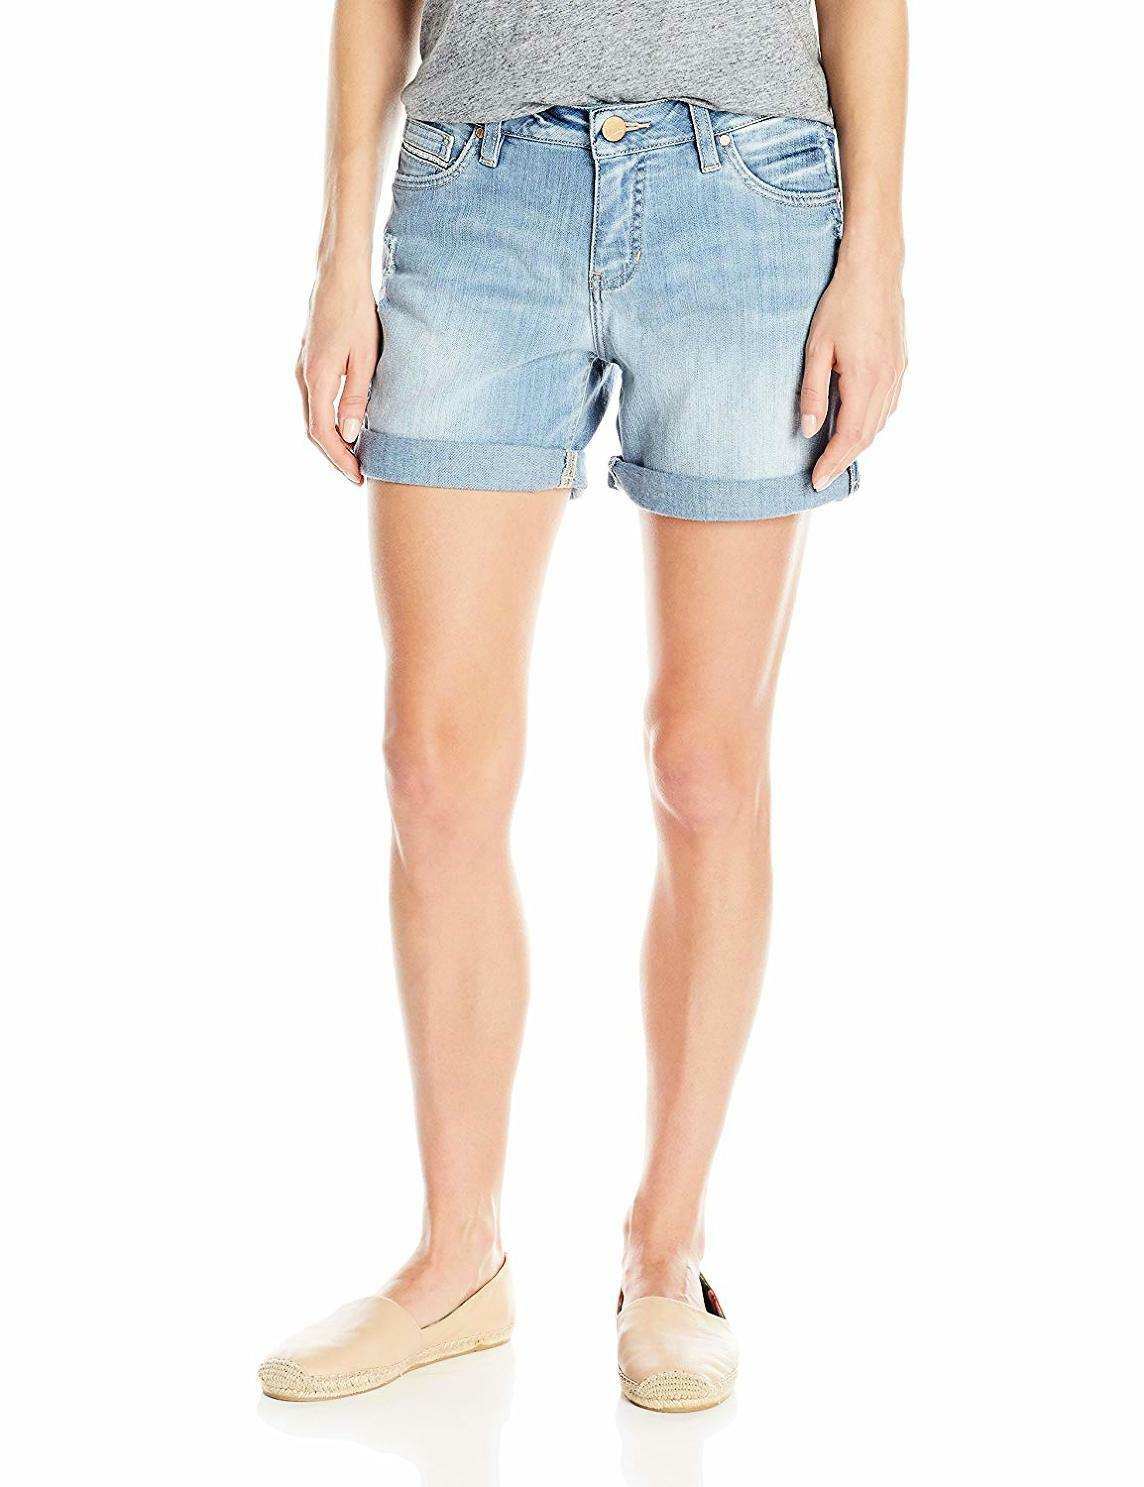 Jag Jeans Women's Alex Boyfriend Short - Choose SZ color